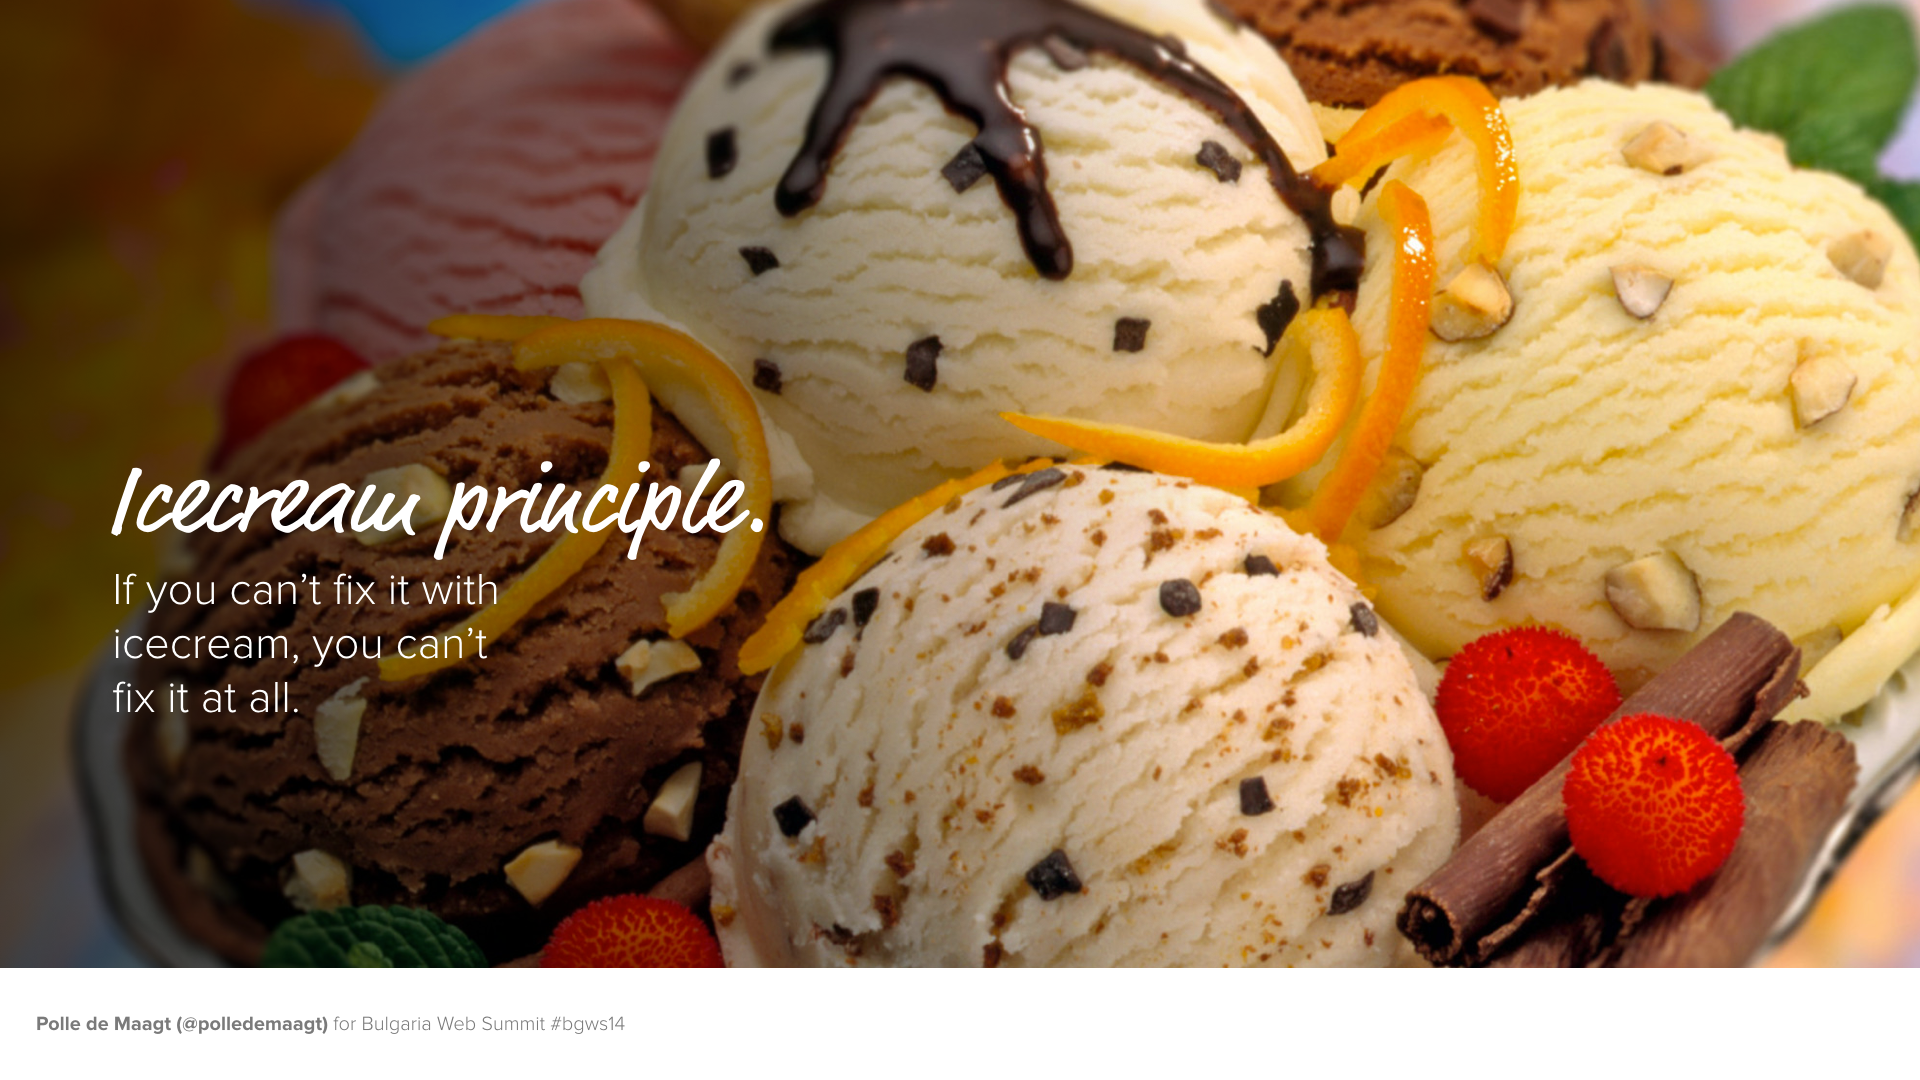 Ice cream principle